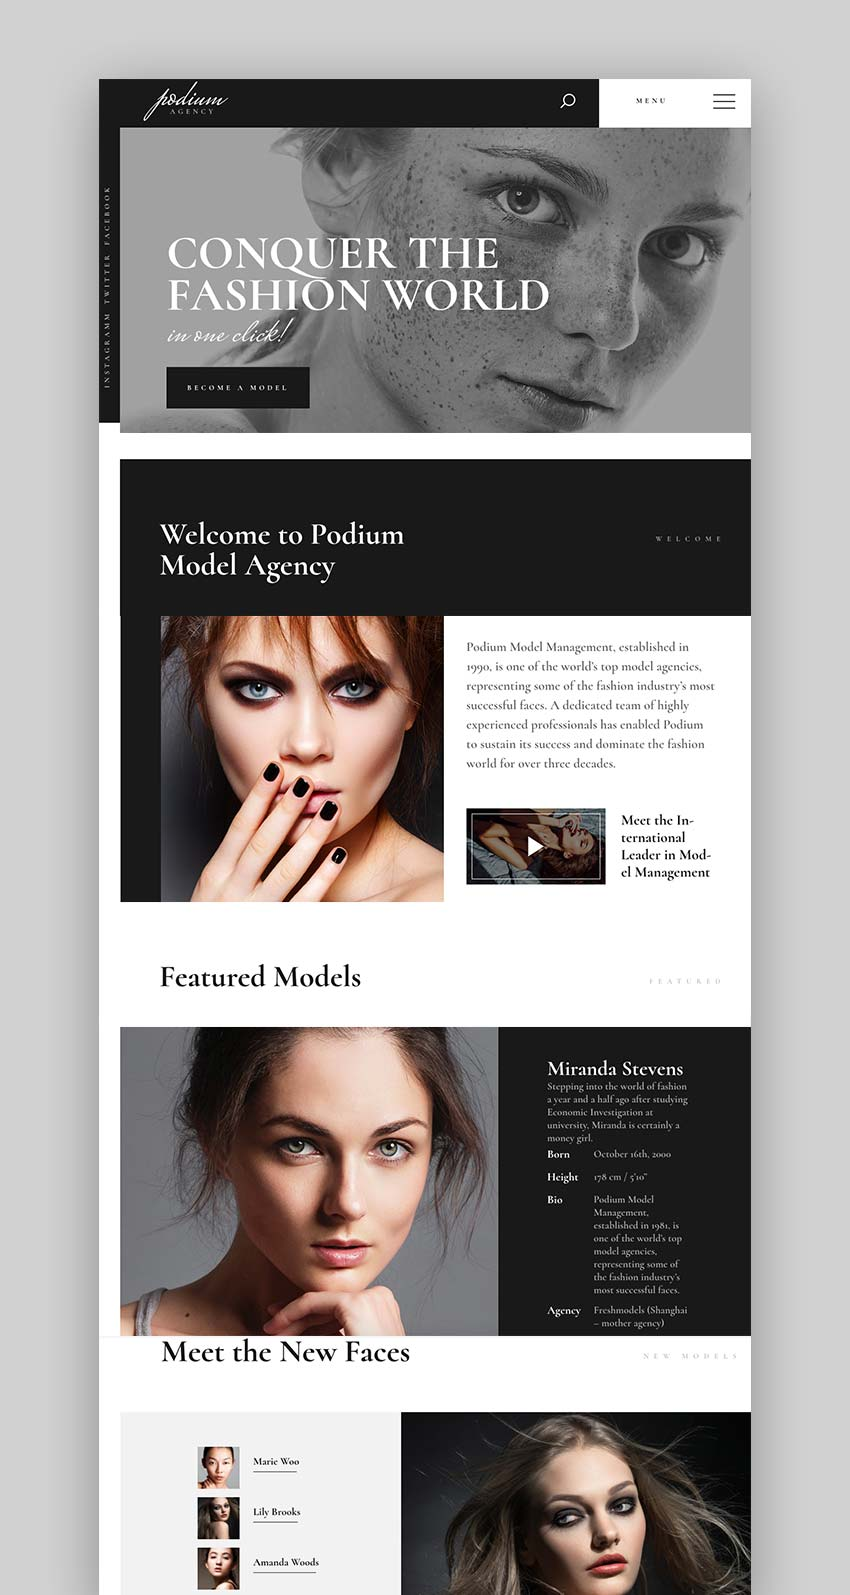 Podium - Fashion Model Agency WordPress Theme